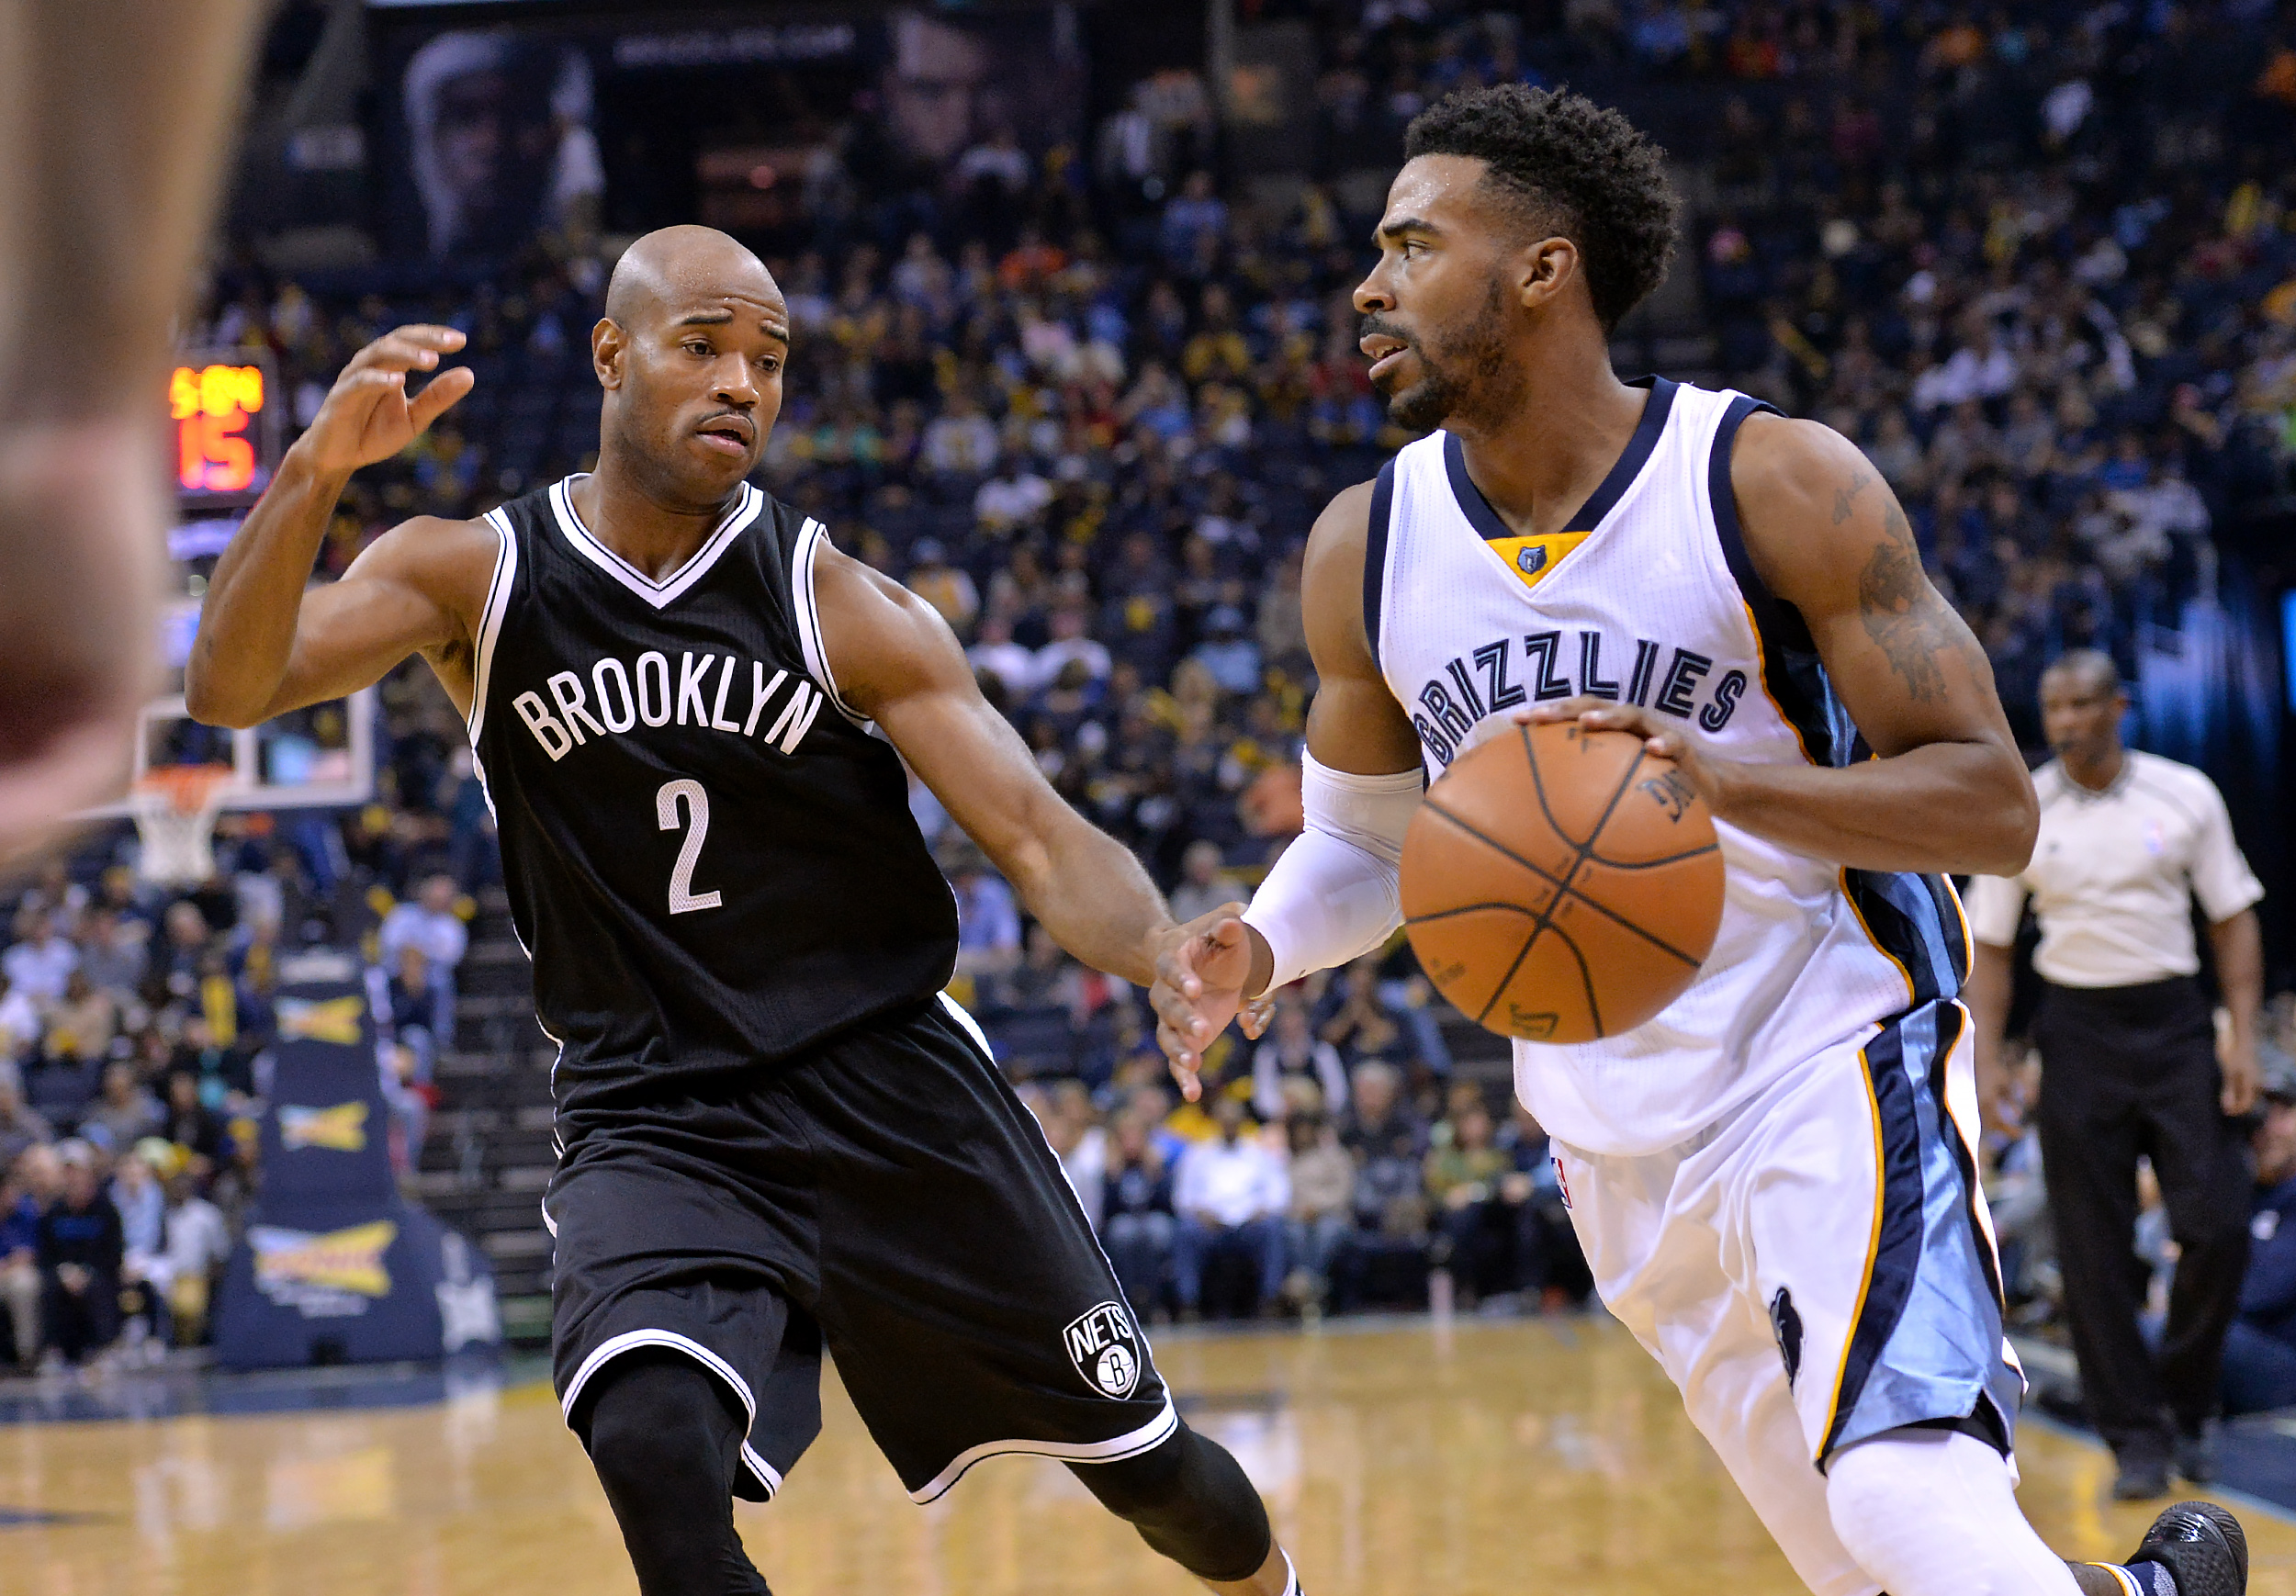 Memphis Grizzlies guard Mike Conley, right, controls the ball against Brooklyn Nets guard Jarrett Jack (2) in the second half of an NBA basketball game Saturday, Oct. 31, 2015, in Memphis, Tenn. (AP Photo/Brandon Dill)